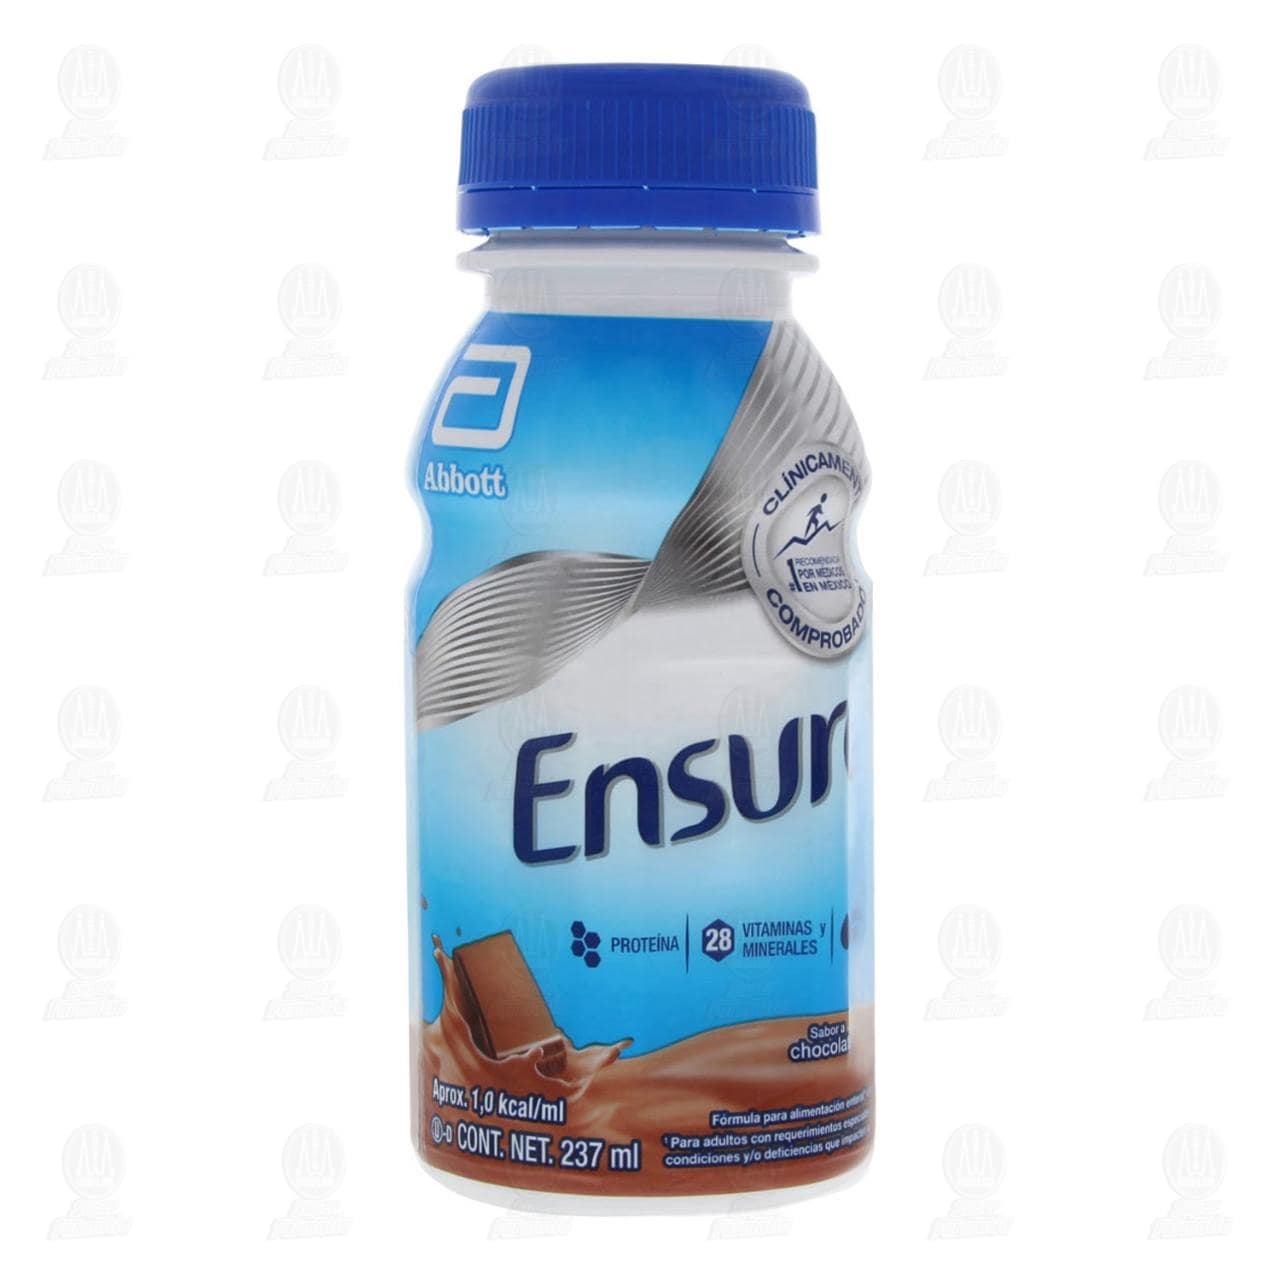 Ensure Regular ChocolateBotella 237ml